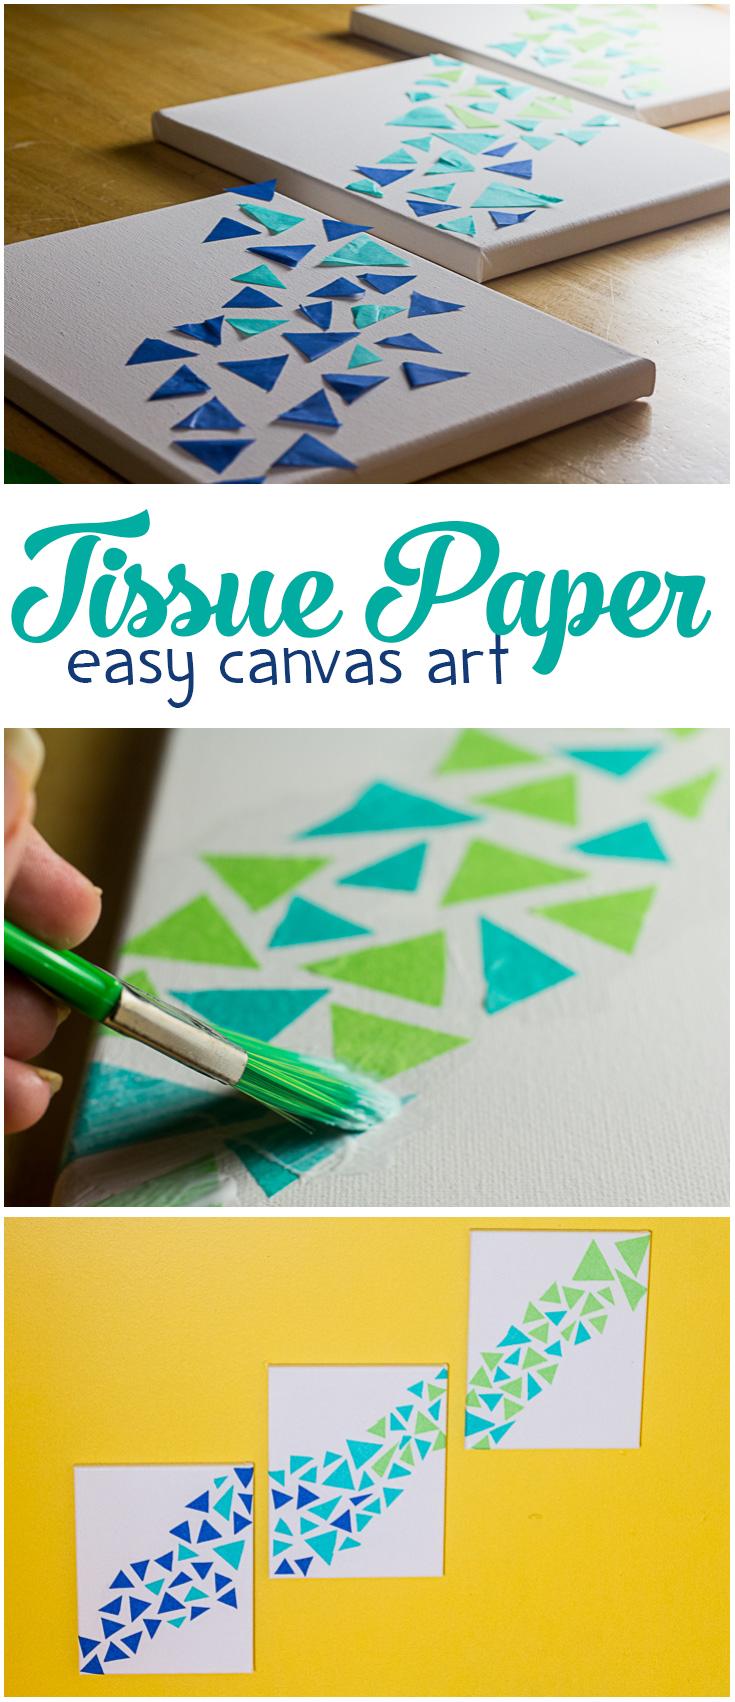 This tissue paper canvas art is so easy! Looking for the perfect mermaid scale artwork or easy craft project for you or your teen? This one takes less than an hour to make, is beautiful, and even makes a perfect gift! | DIY canvas art | tissue paper craft | easy craft for adults | easy teen craft |